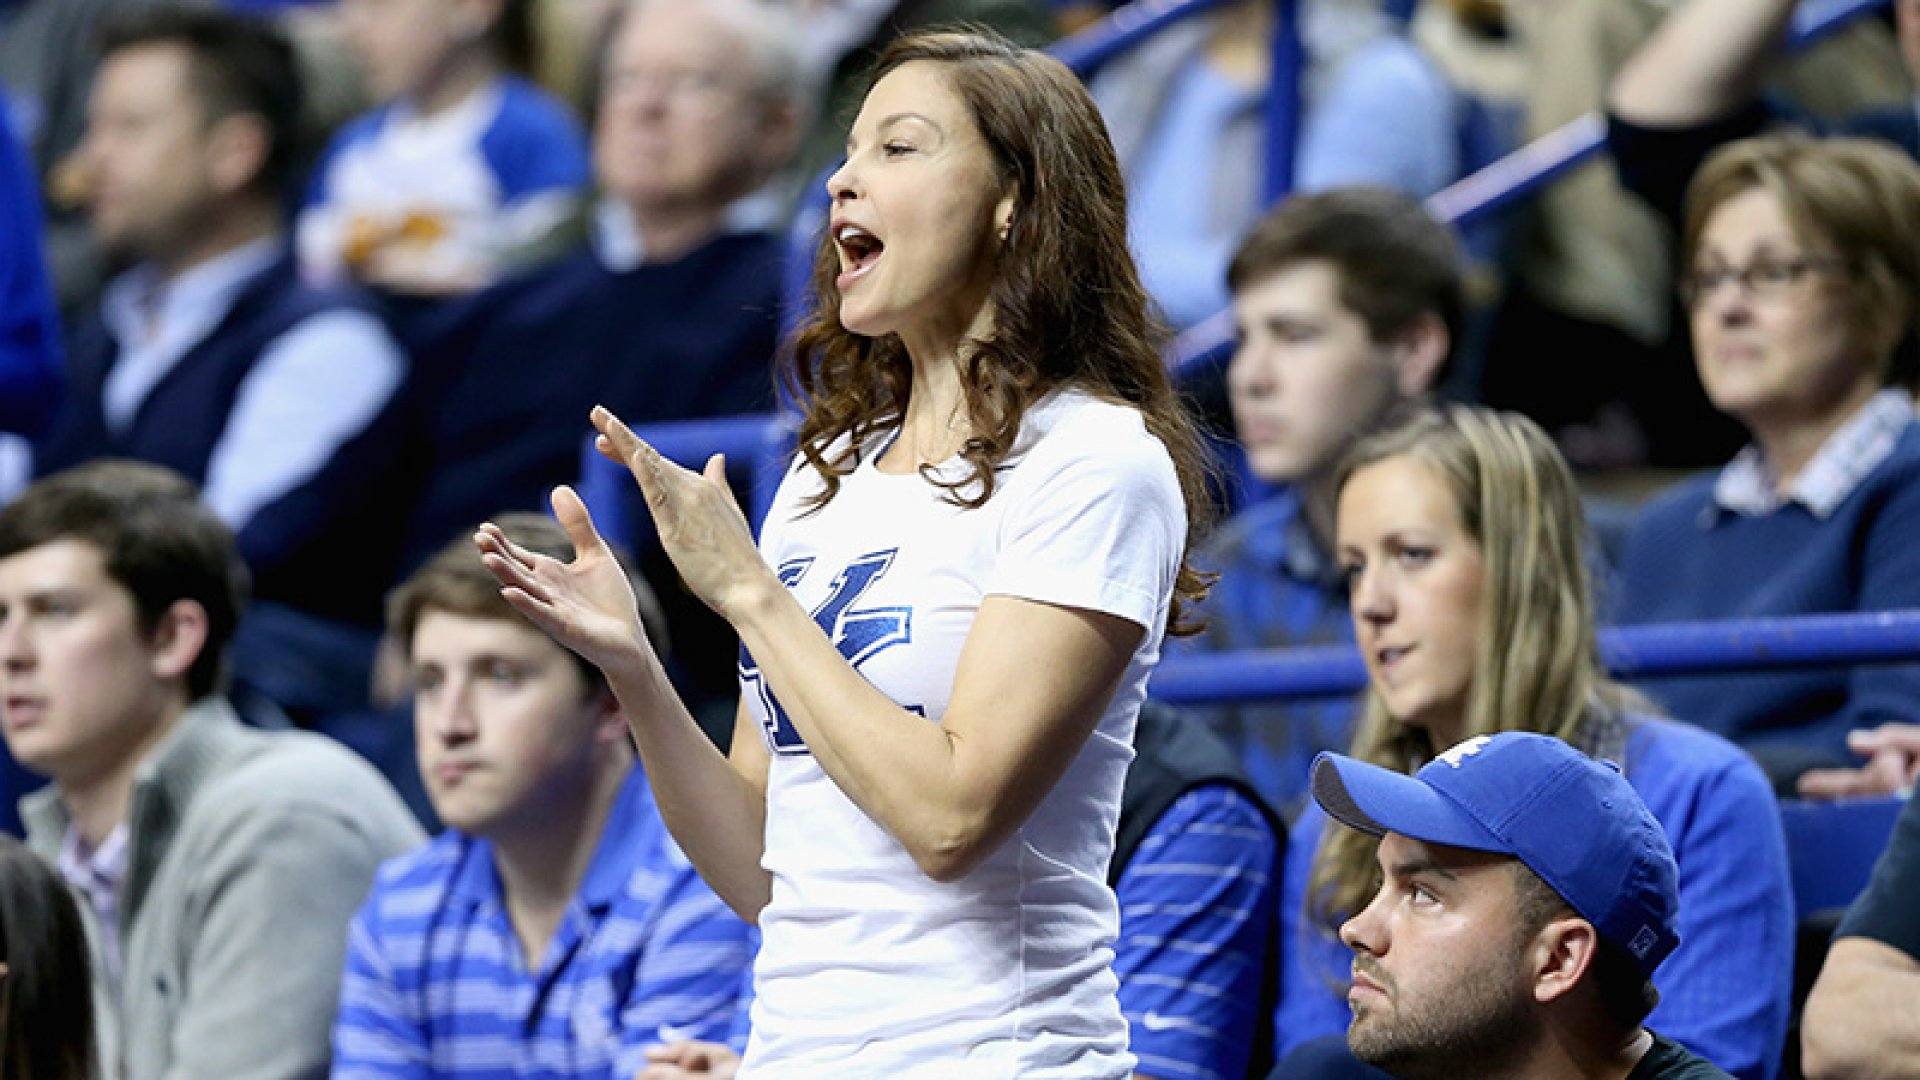 Ashley Judd (pictured) recently experienced cyber bullying after sending a tweet about Kentucky's basketball team.